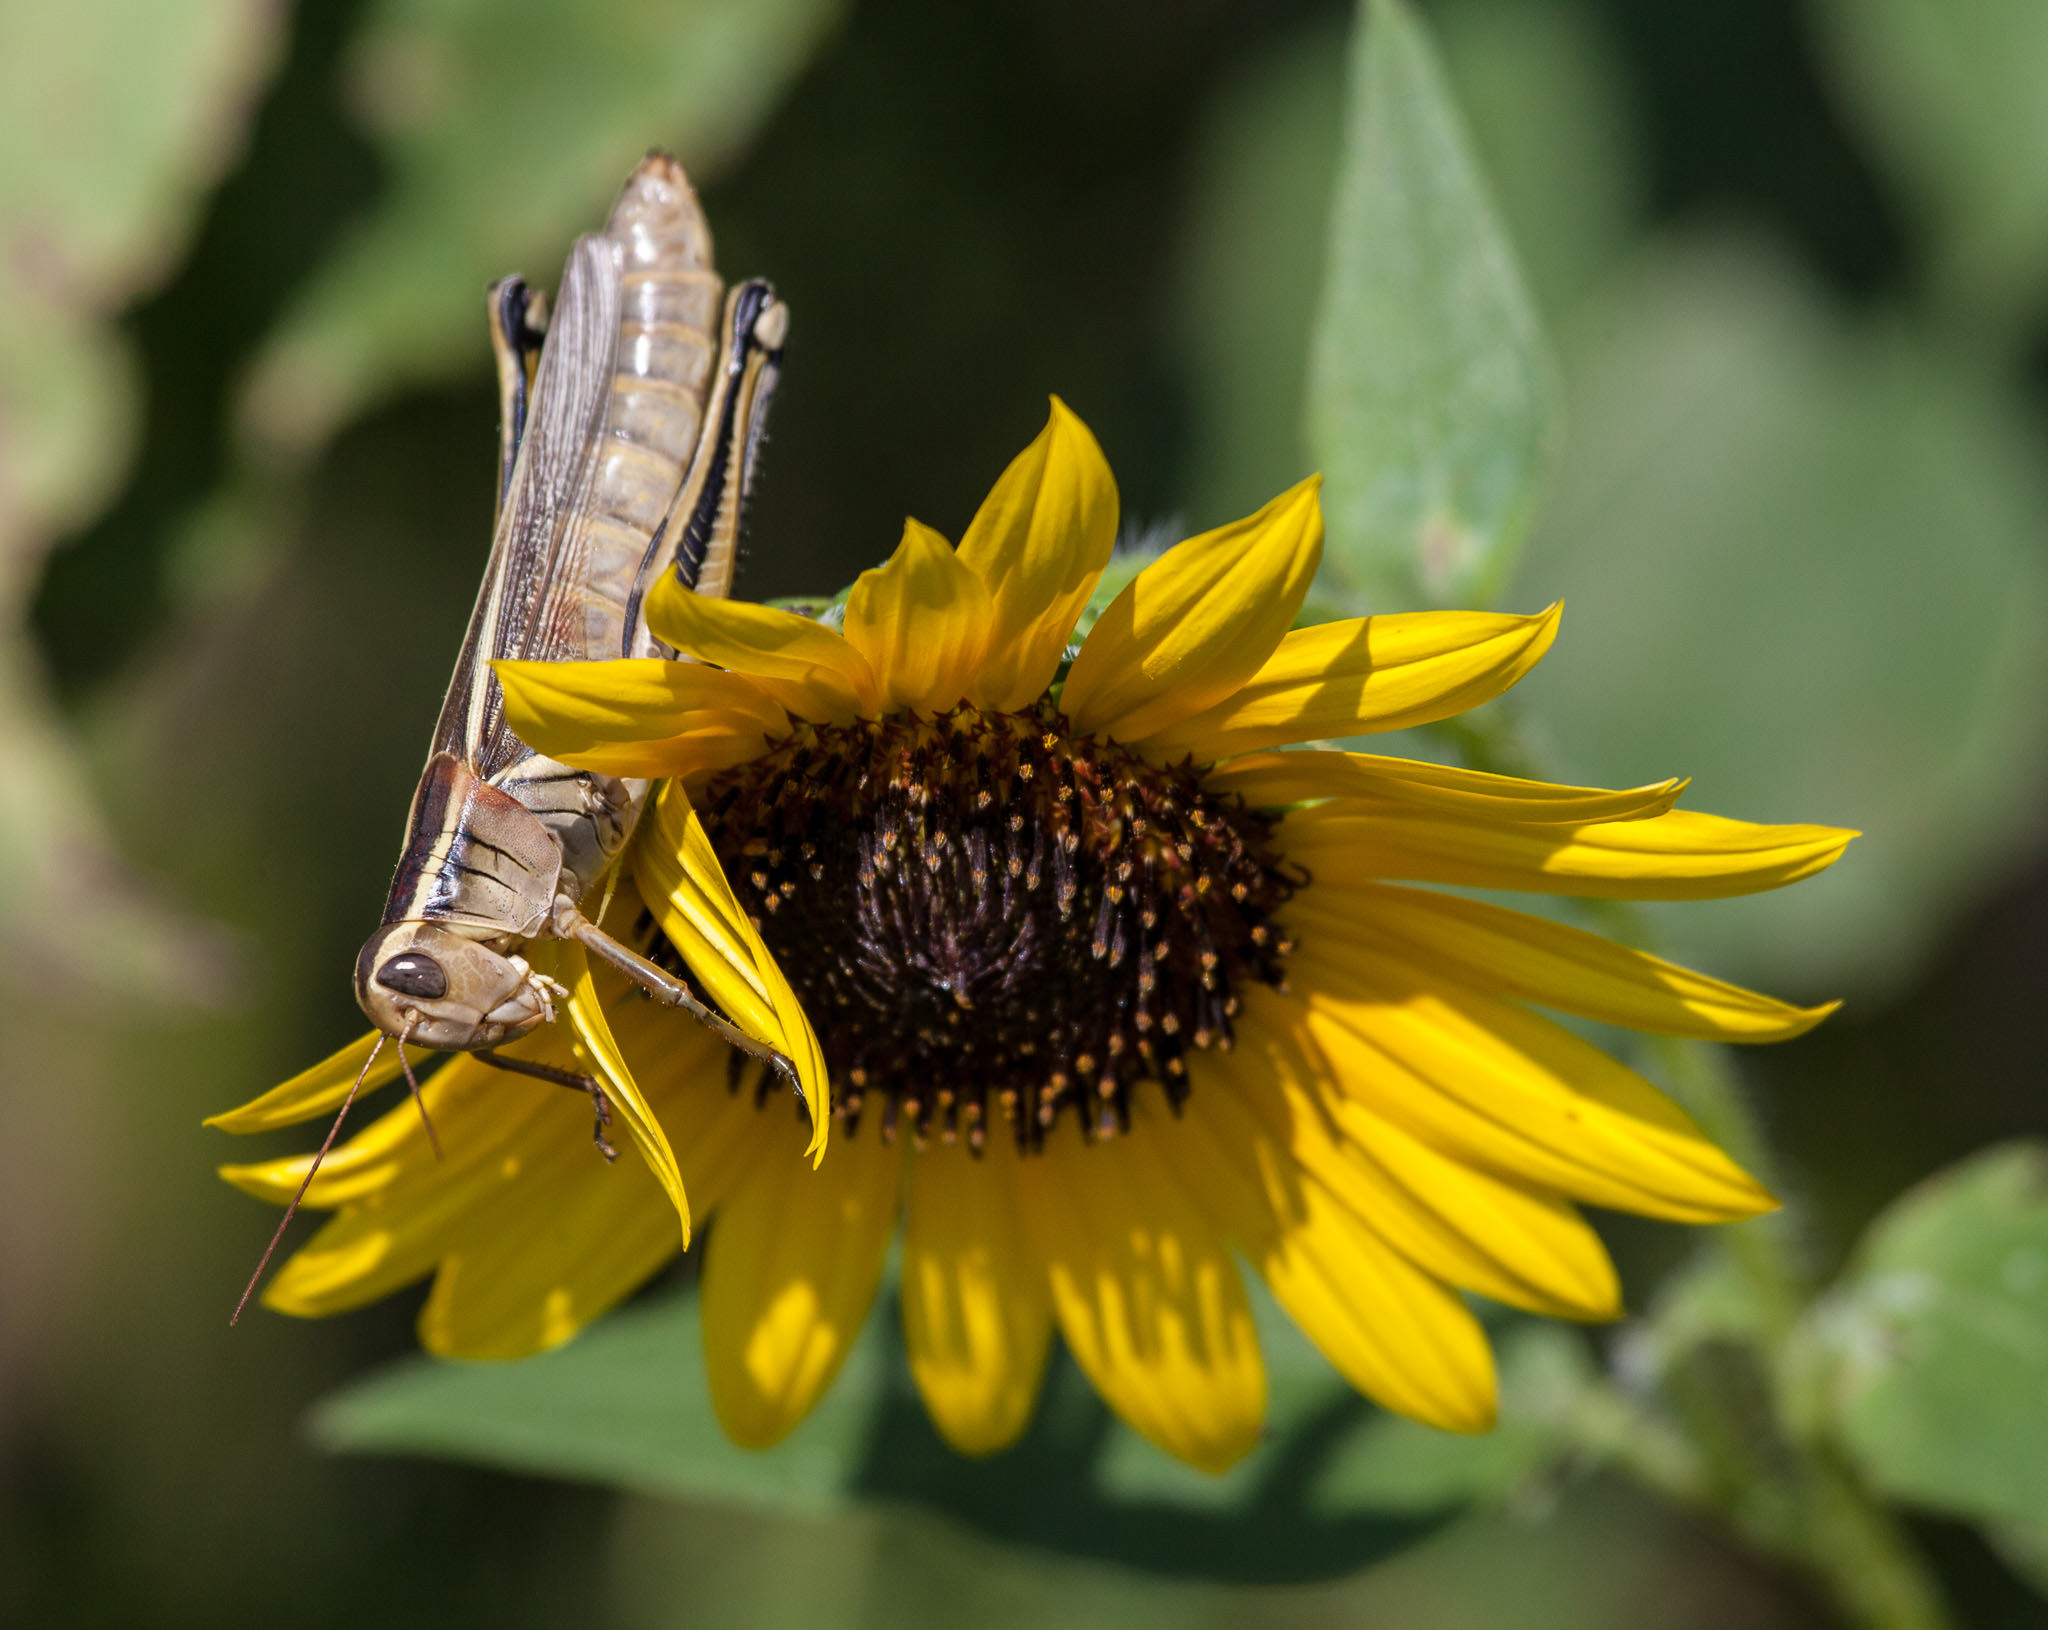 Grasshopper and Sunflower